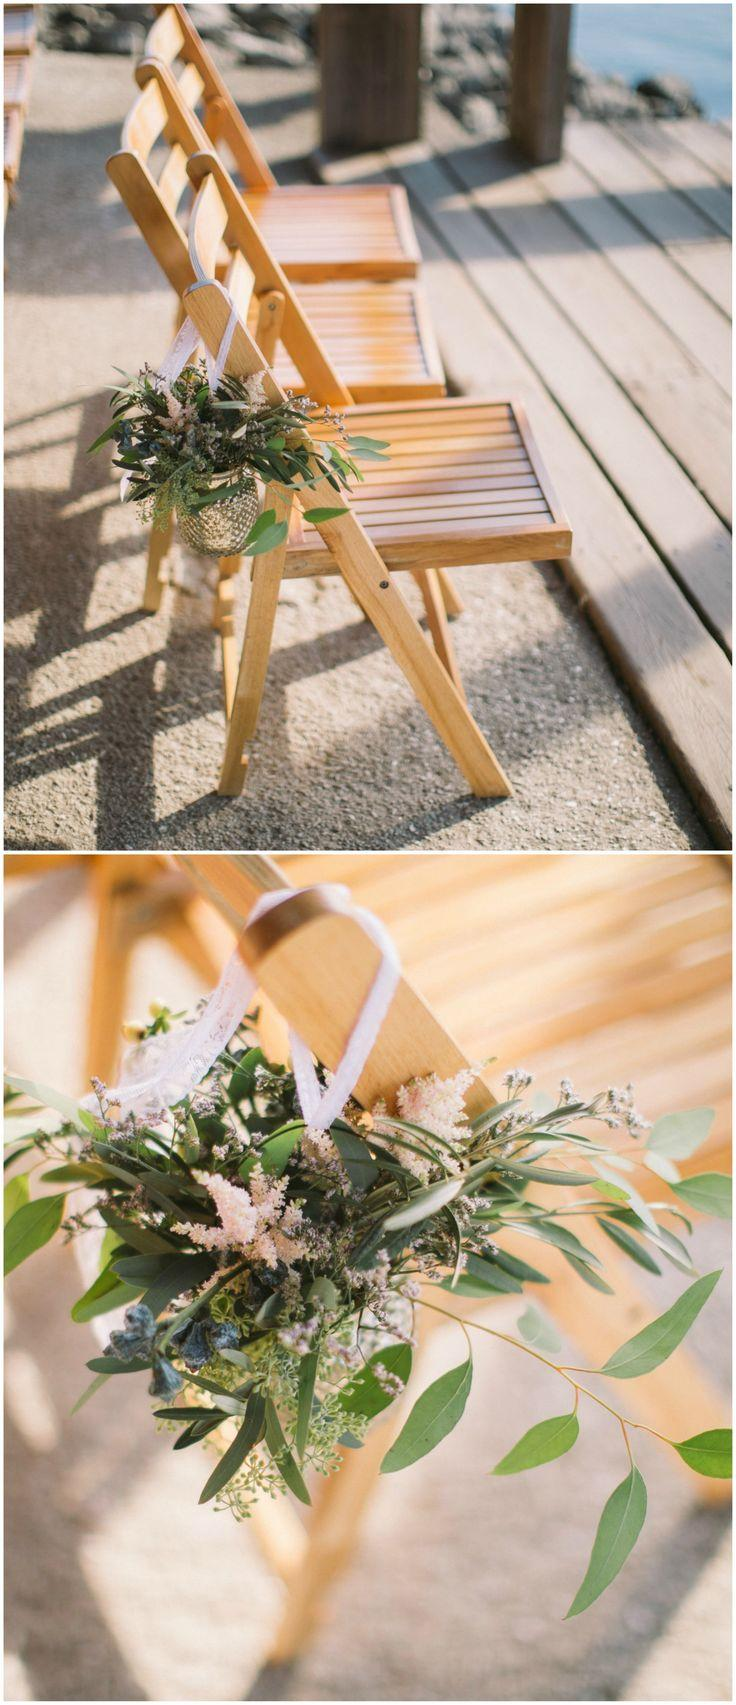 Wedding - Golden Hour Affair With Vintage Touches